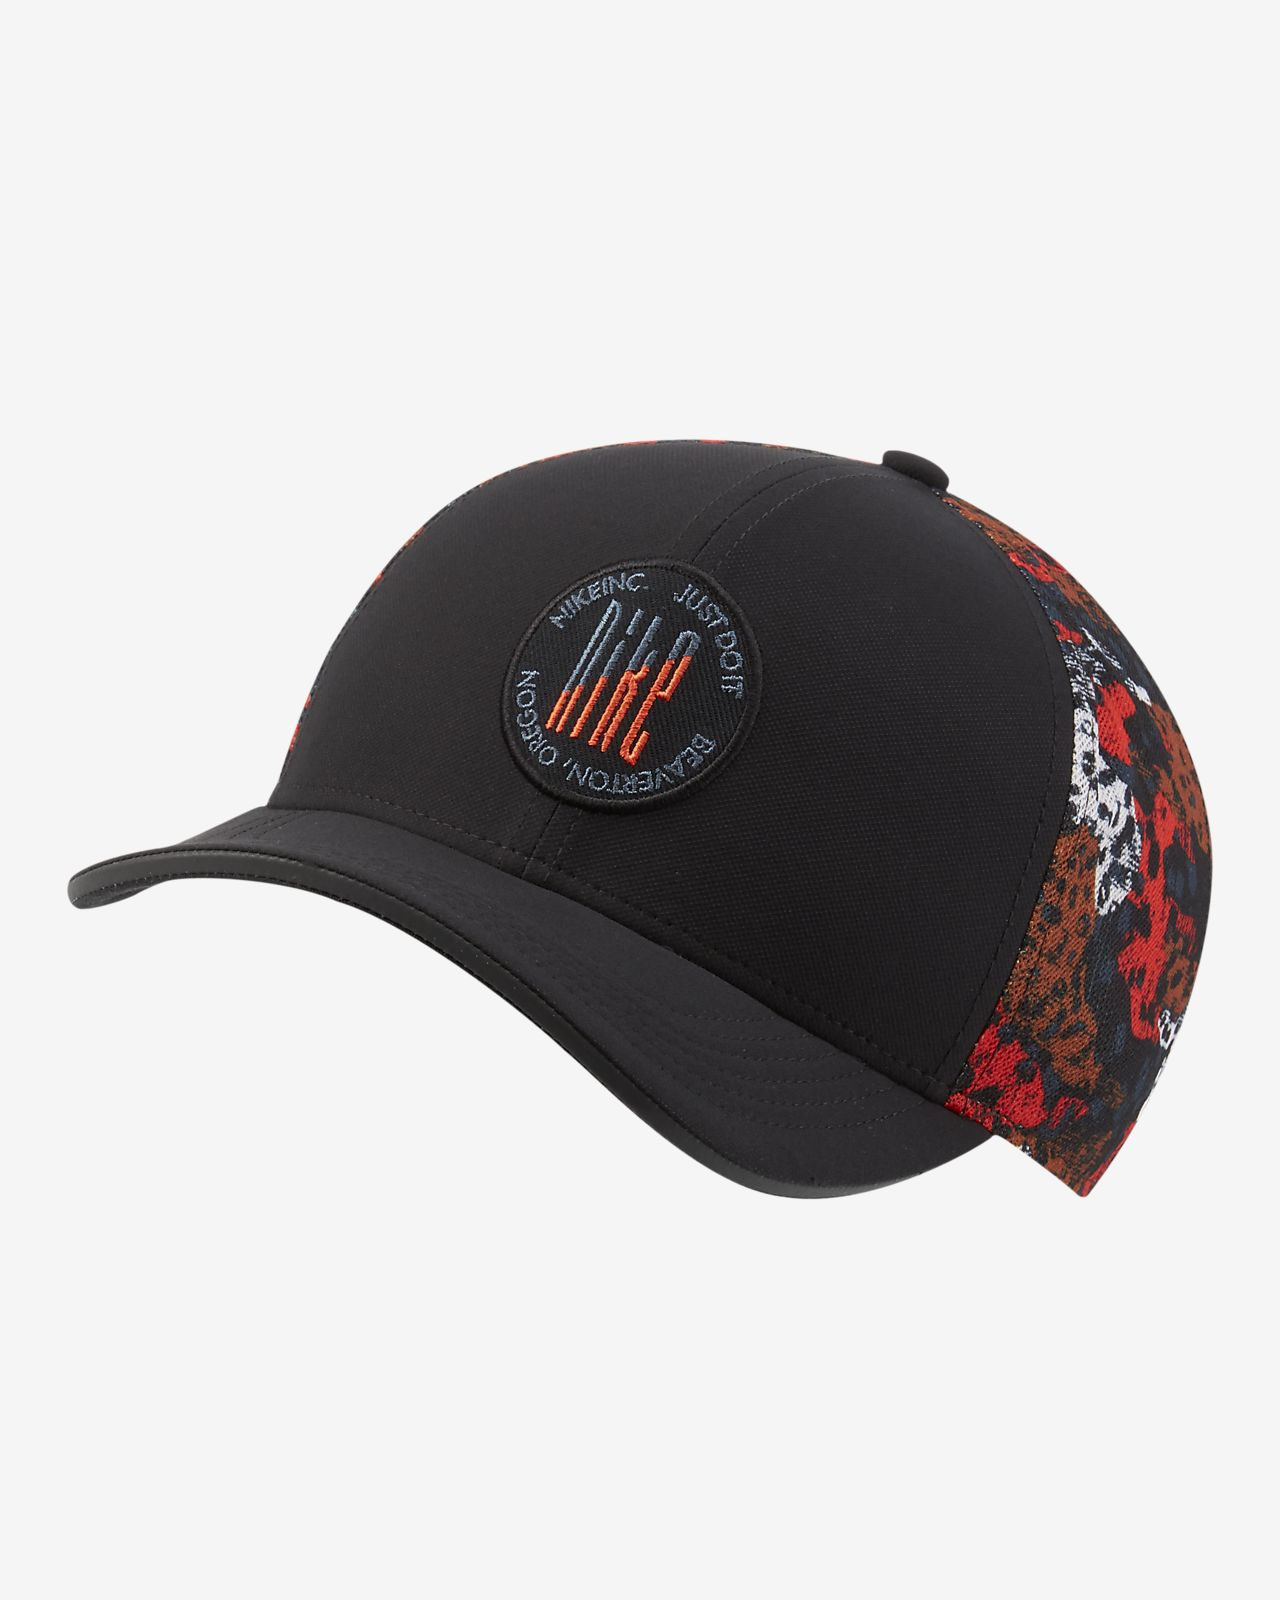 2fb502f892044 Running Cap. Nike Classic 99.  20.97.  28. Low Resolution ...